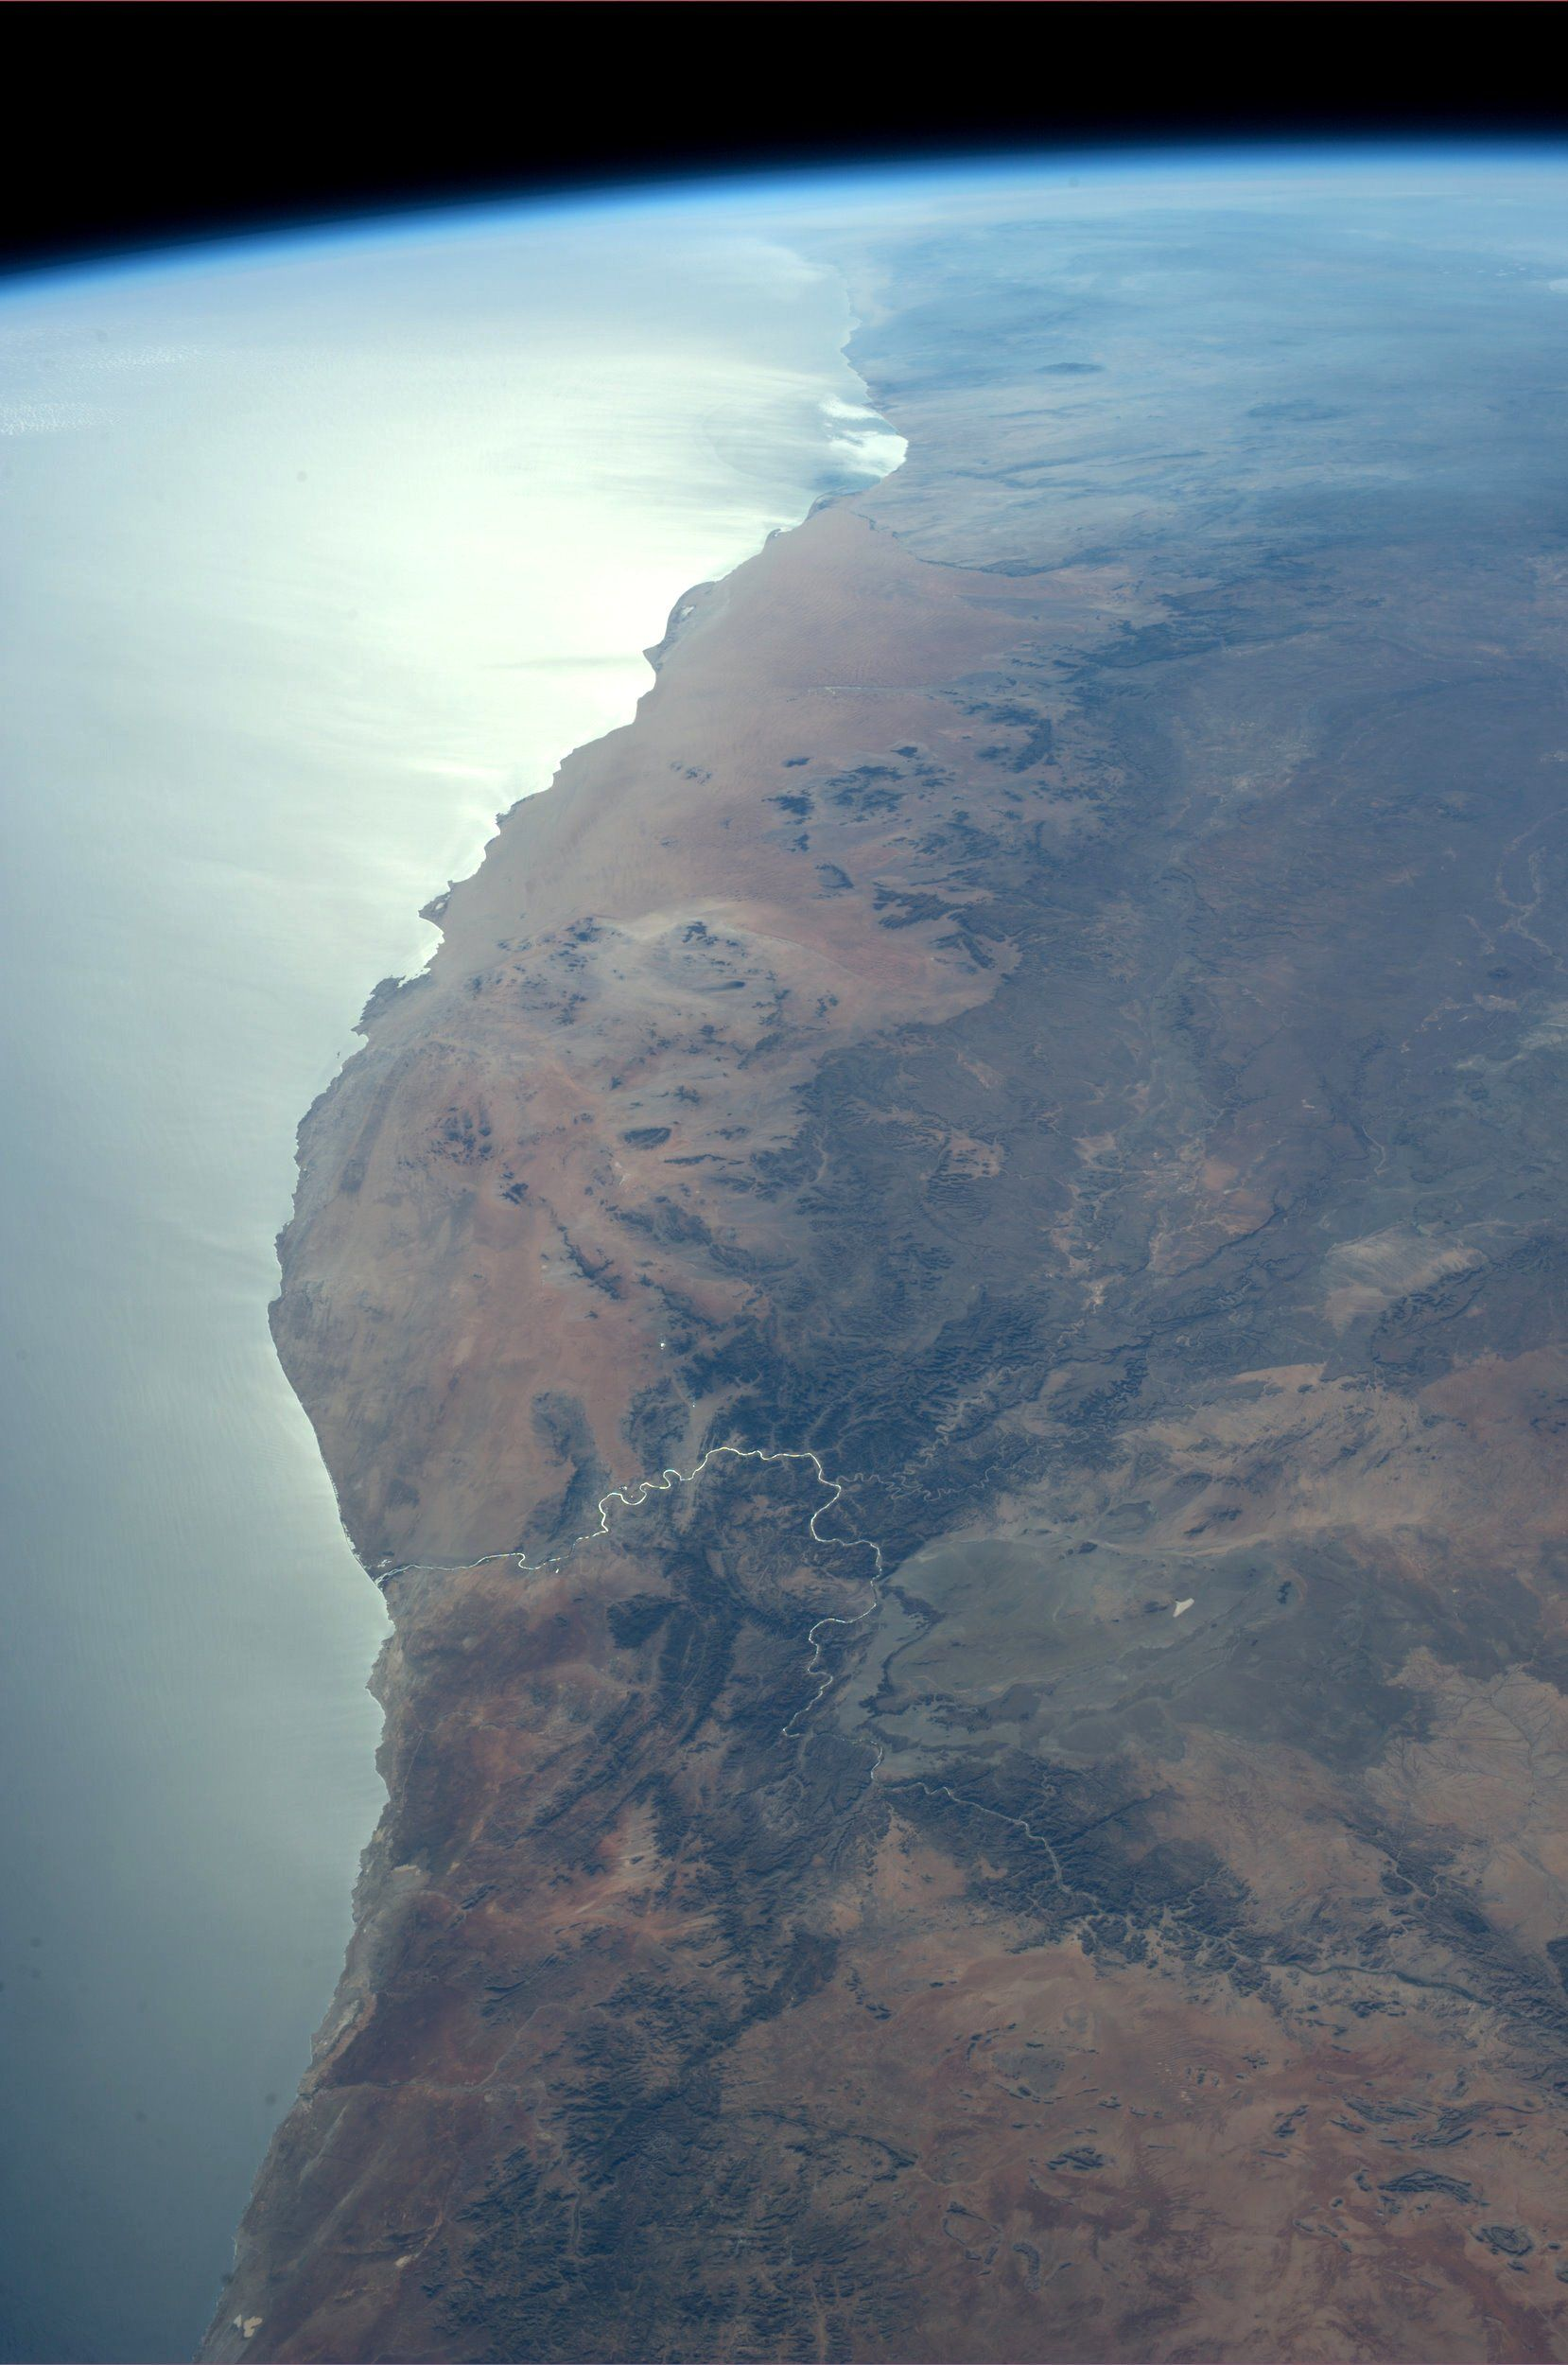 South Africa and Namibia.  Taken July 20, 2013.  KN from space.